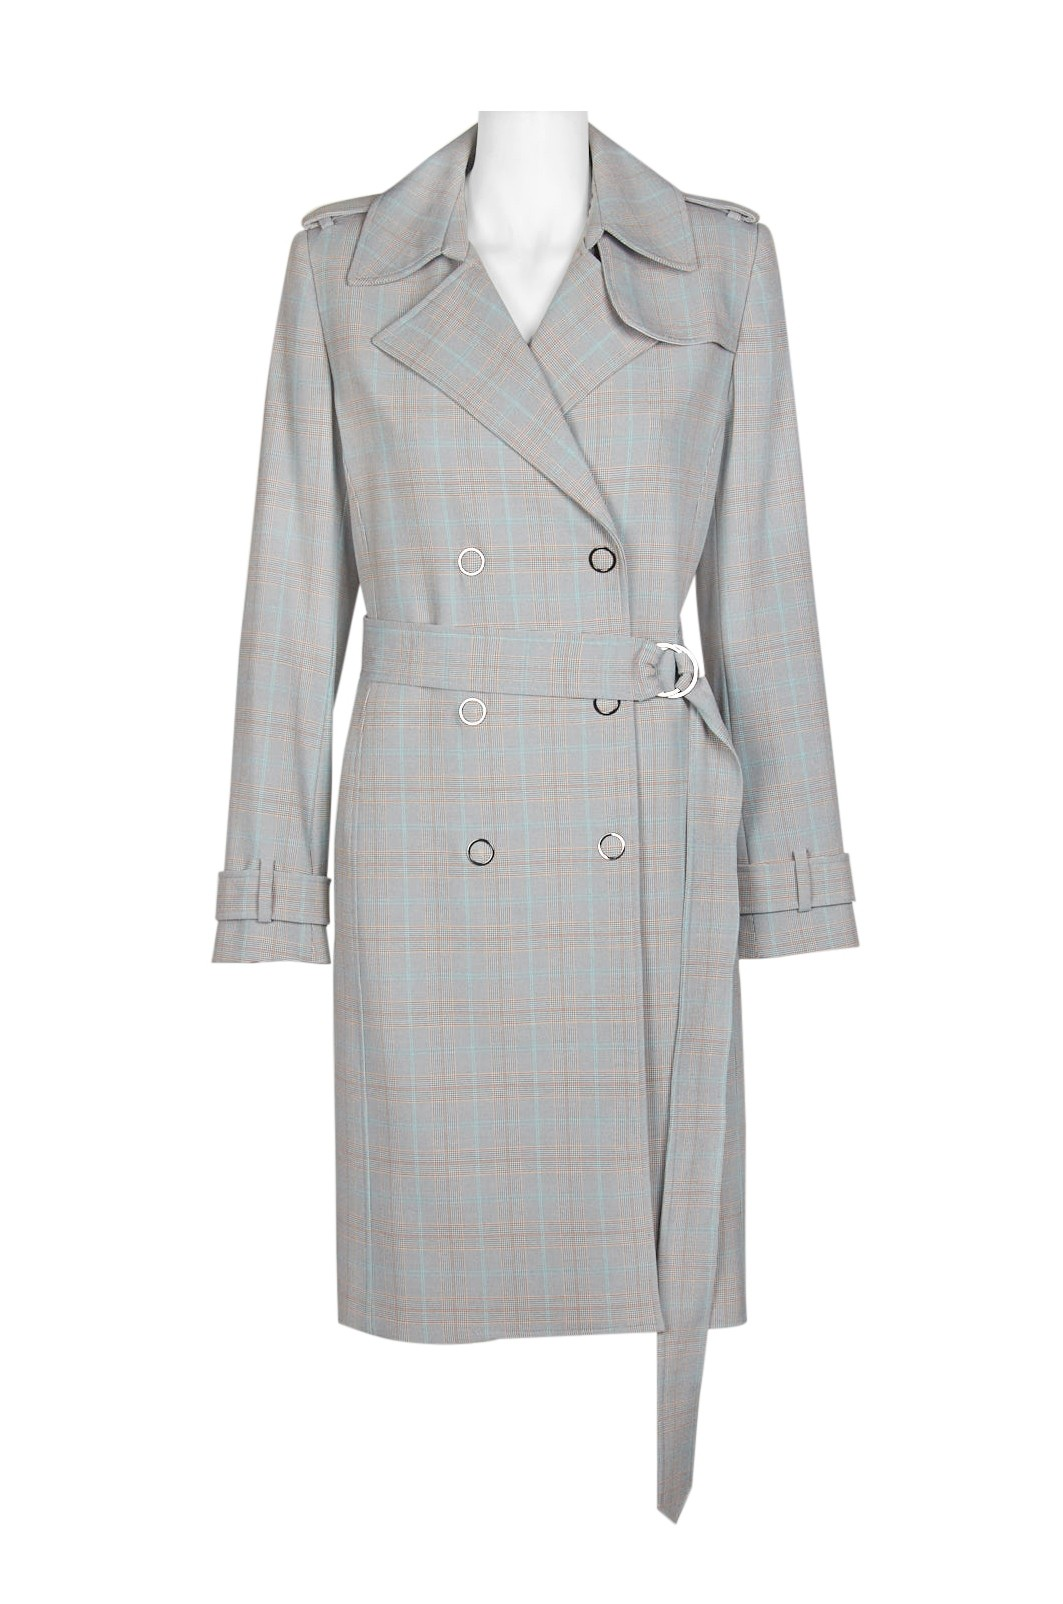 T Tahari Notched Collar Long Sleeve Belted Trench Coat Twill Dress